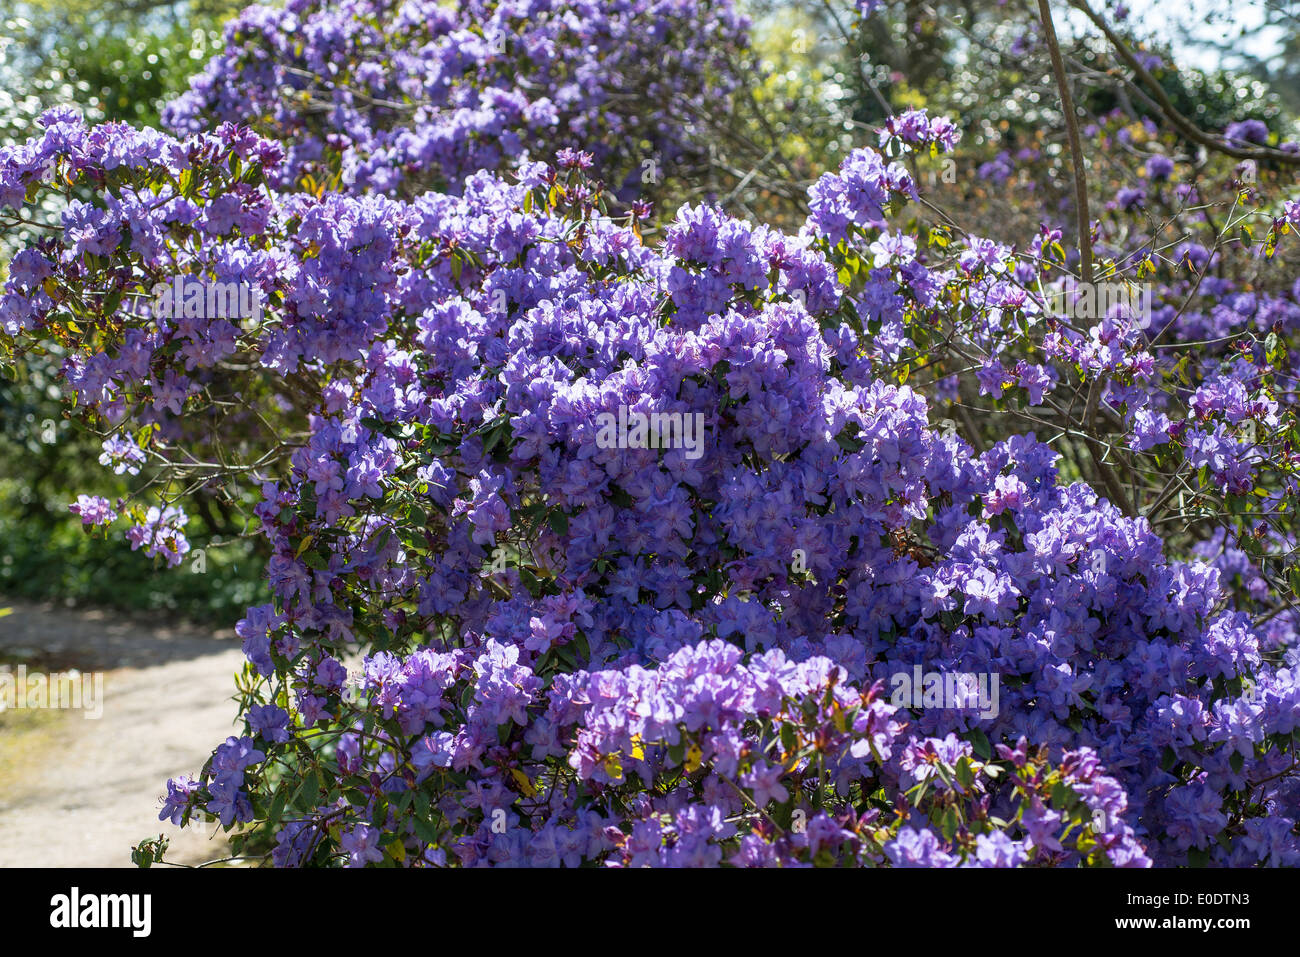 Rhododendron 'Saint Tudy' - Stock Image